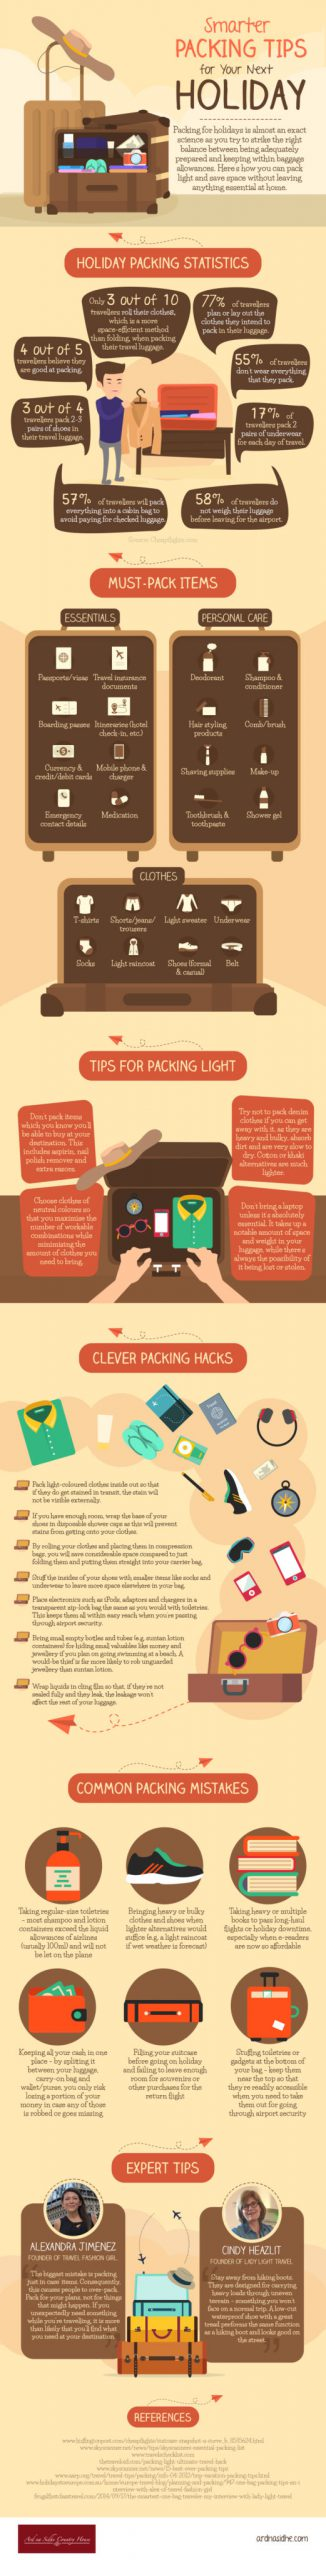 clever packing tips for your trip